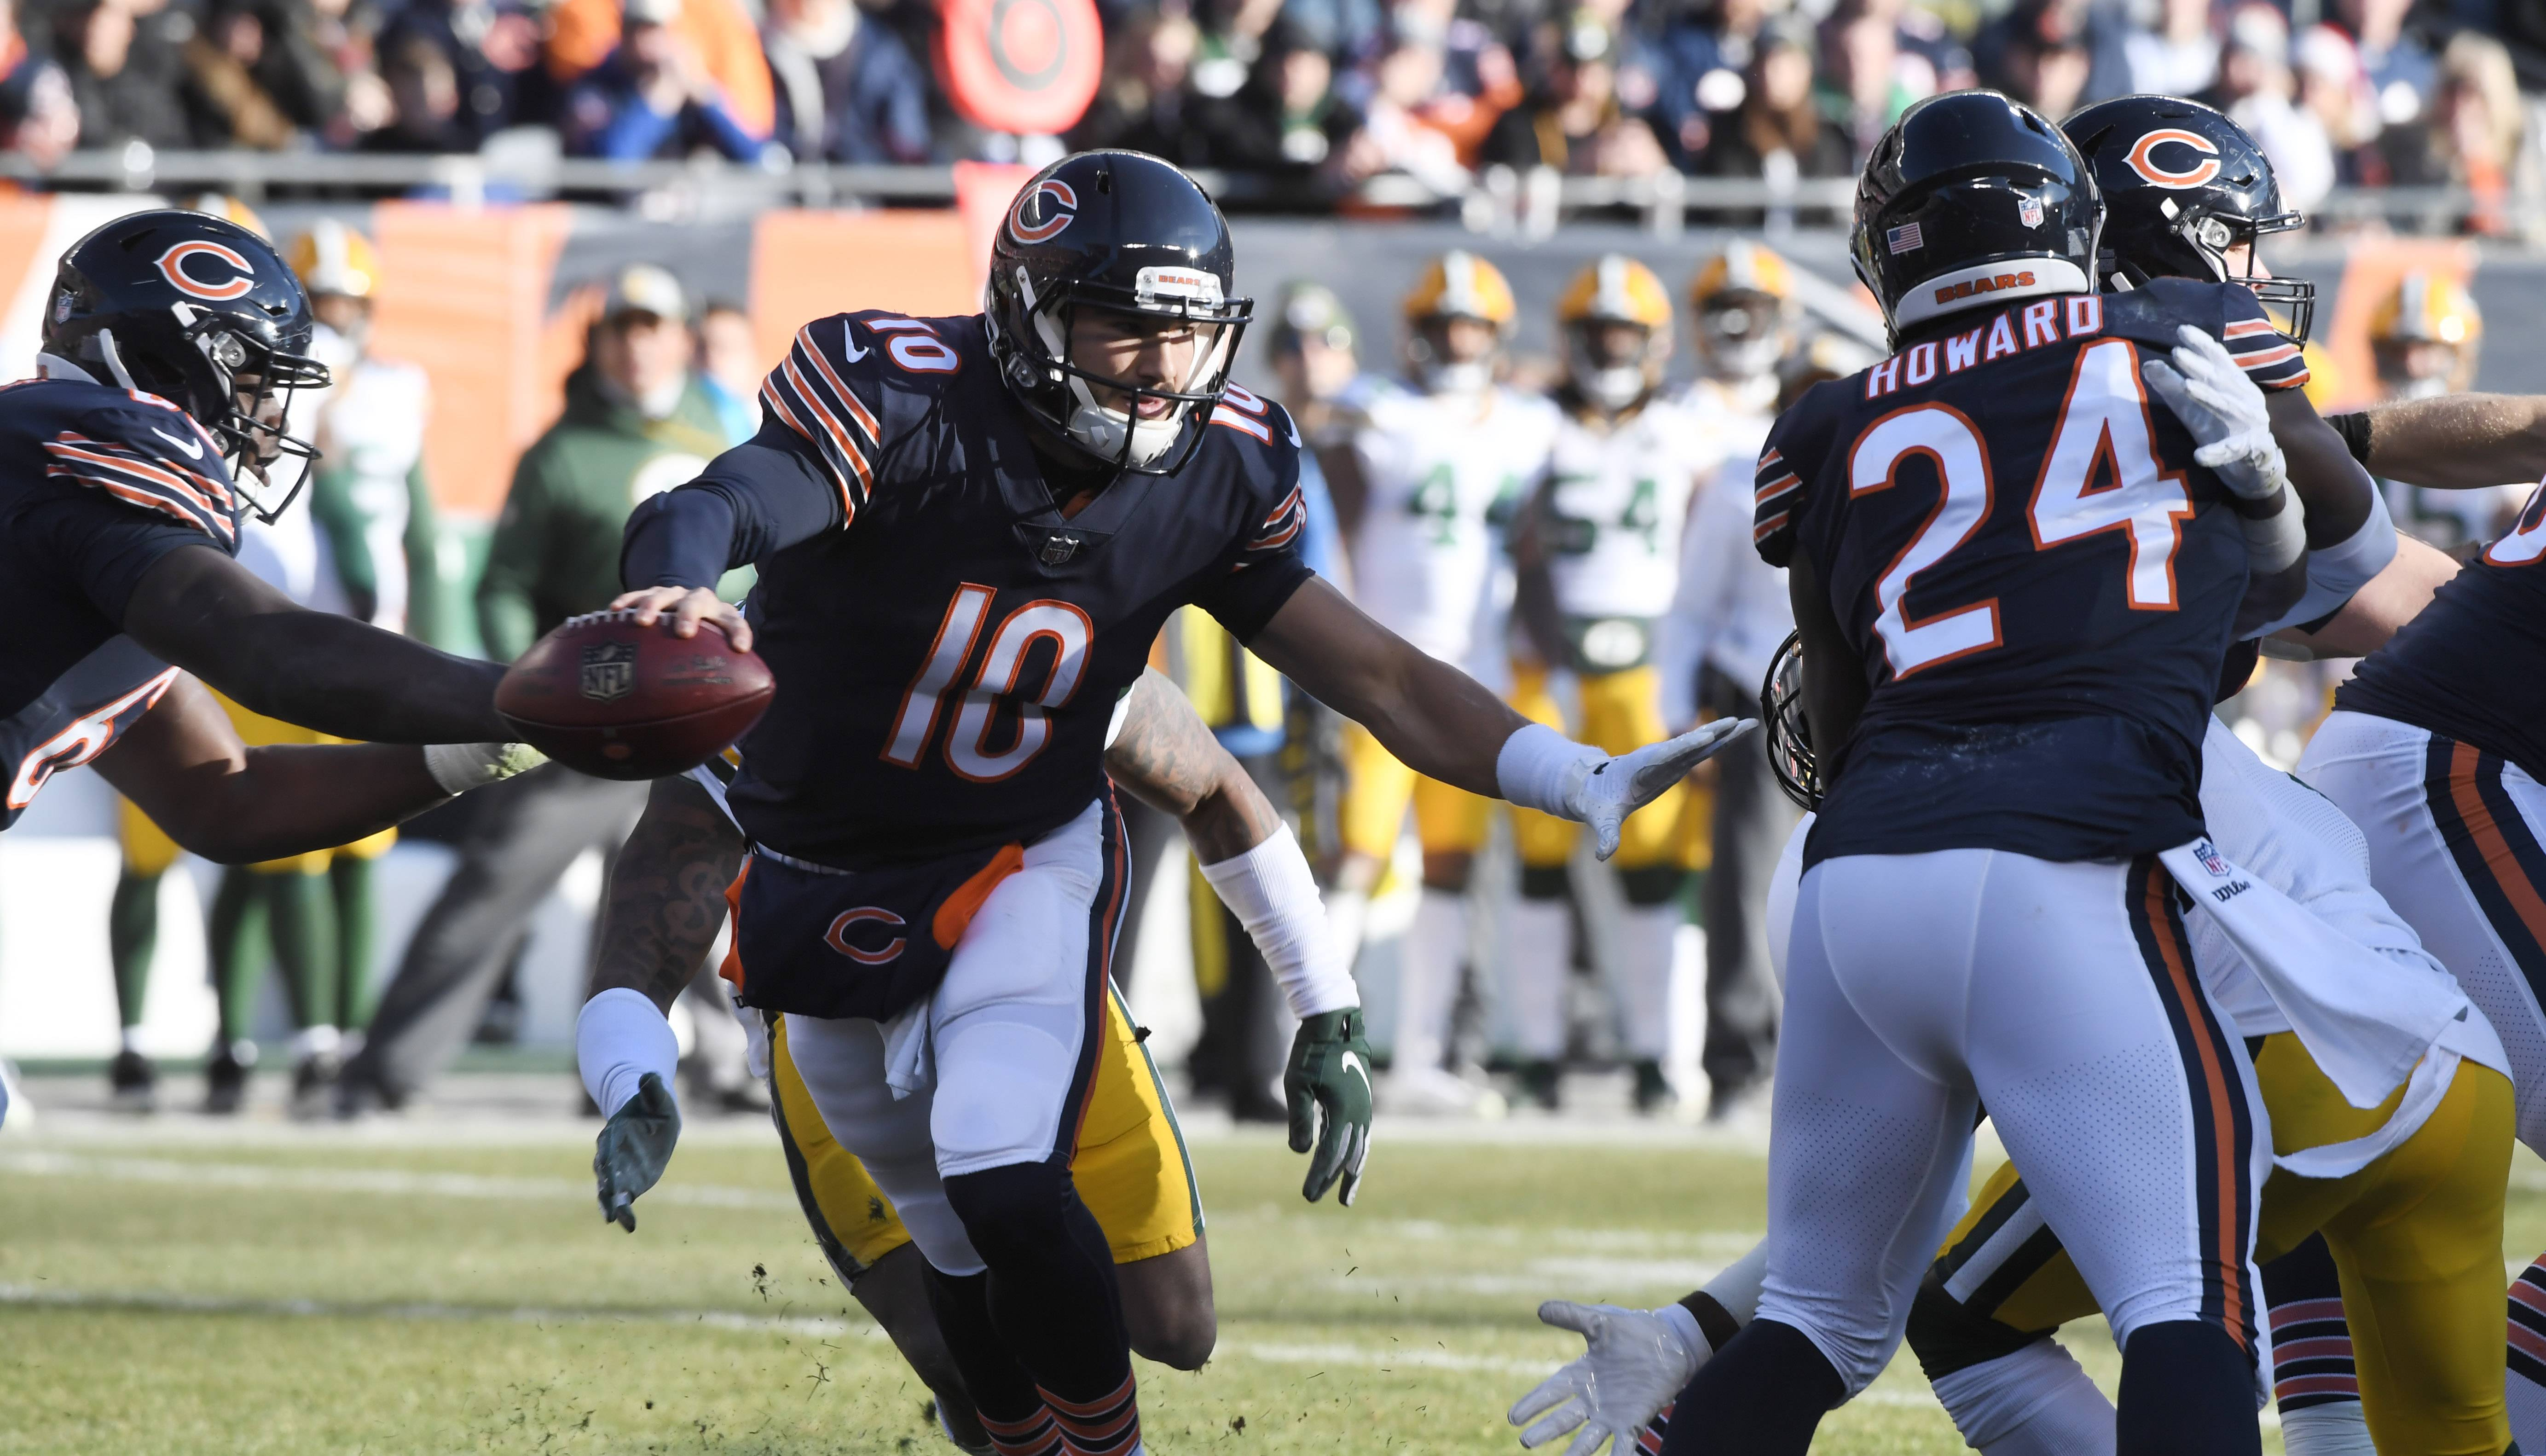 Chicago Bears quarterback Mitch Trubisky scrambles for a first down during Sunday's game against the Green Bay Packers at Soldier Field in Chicago.